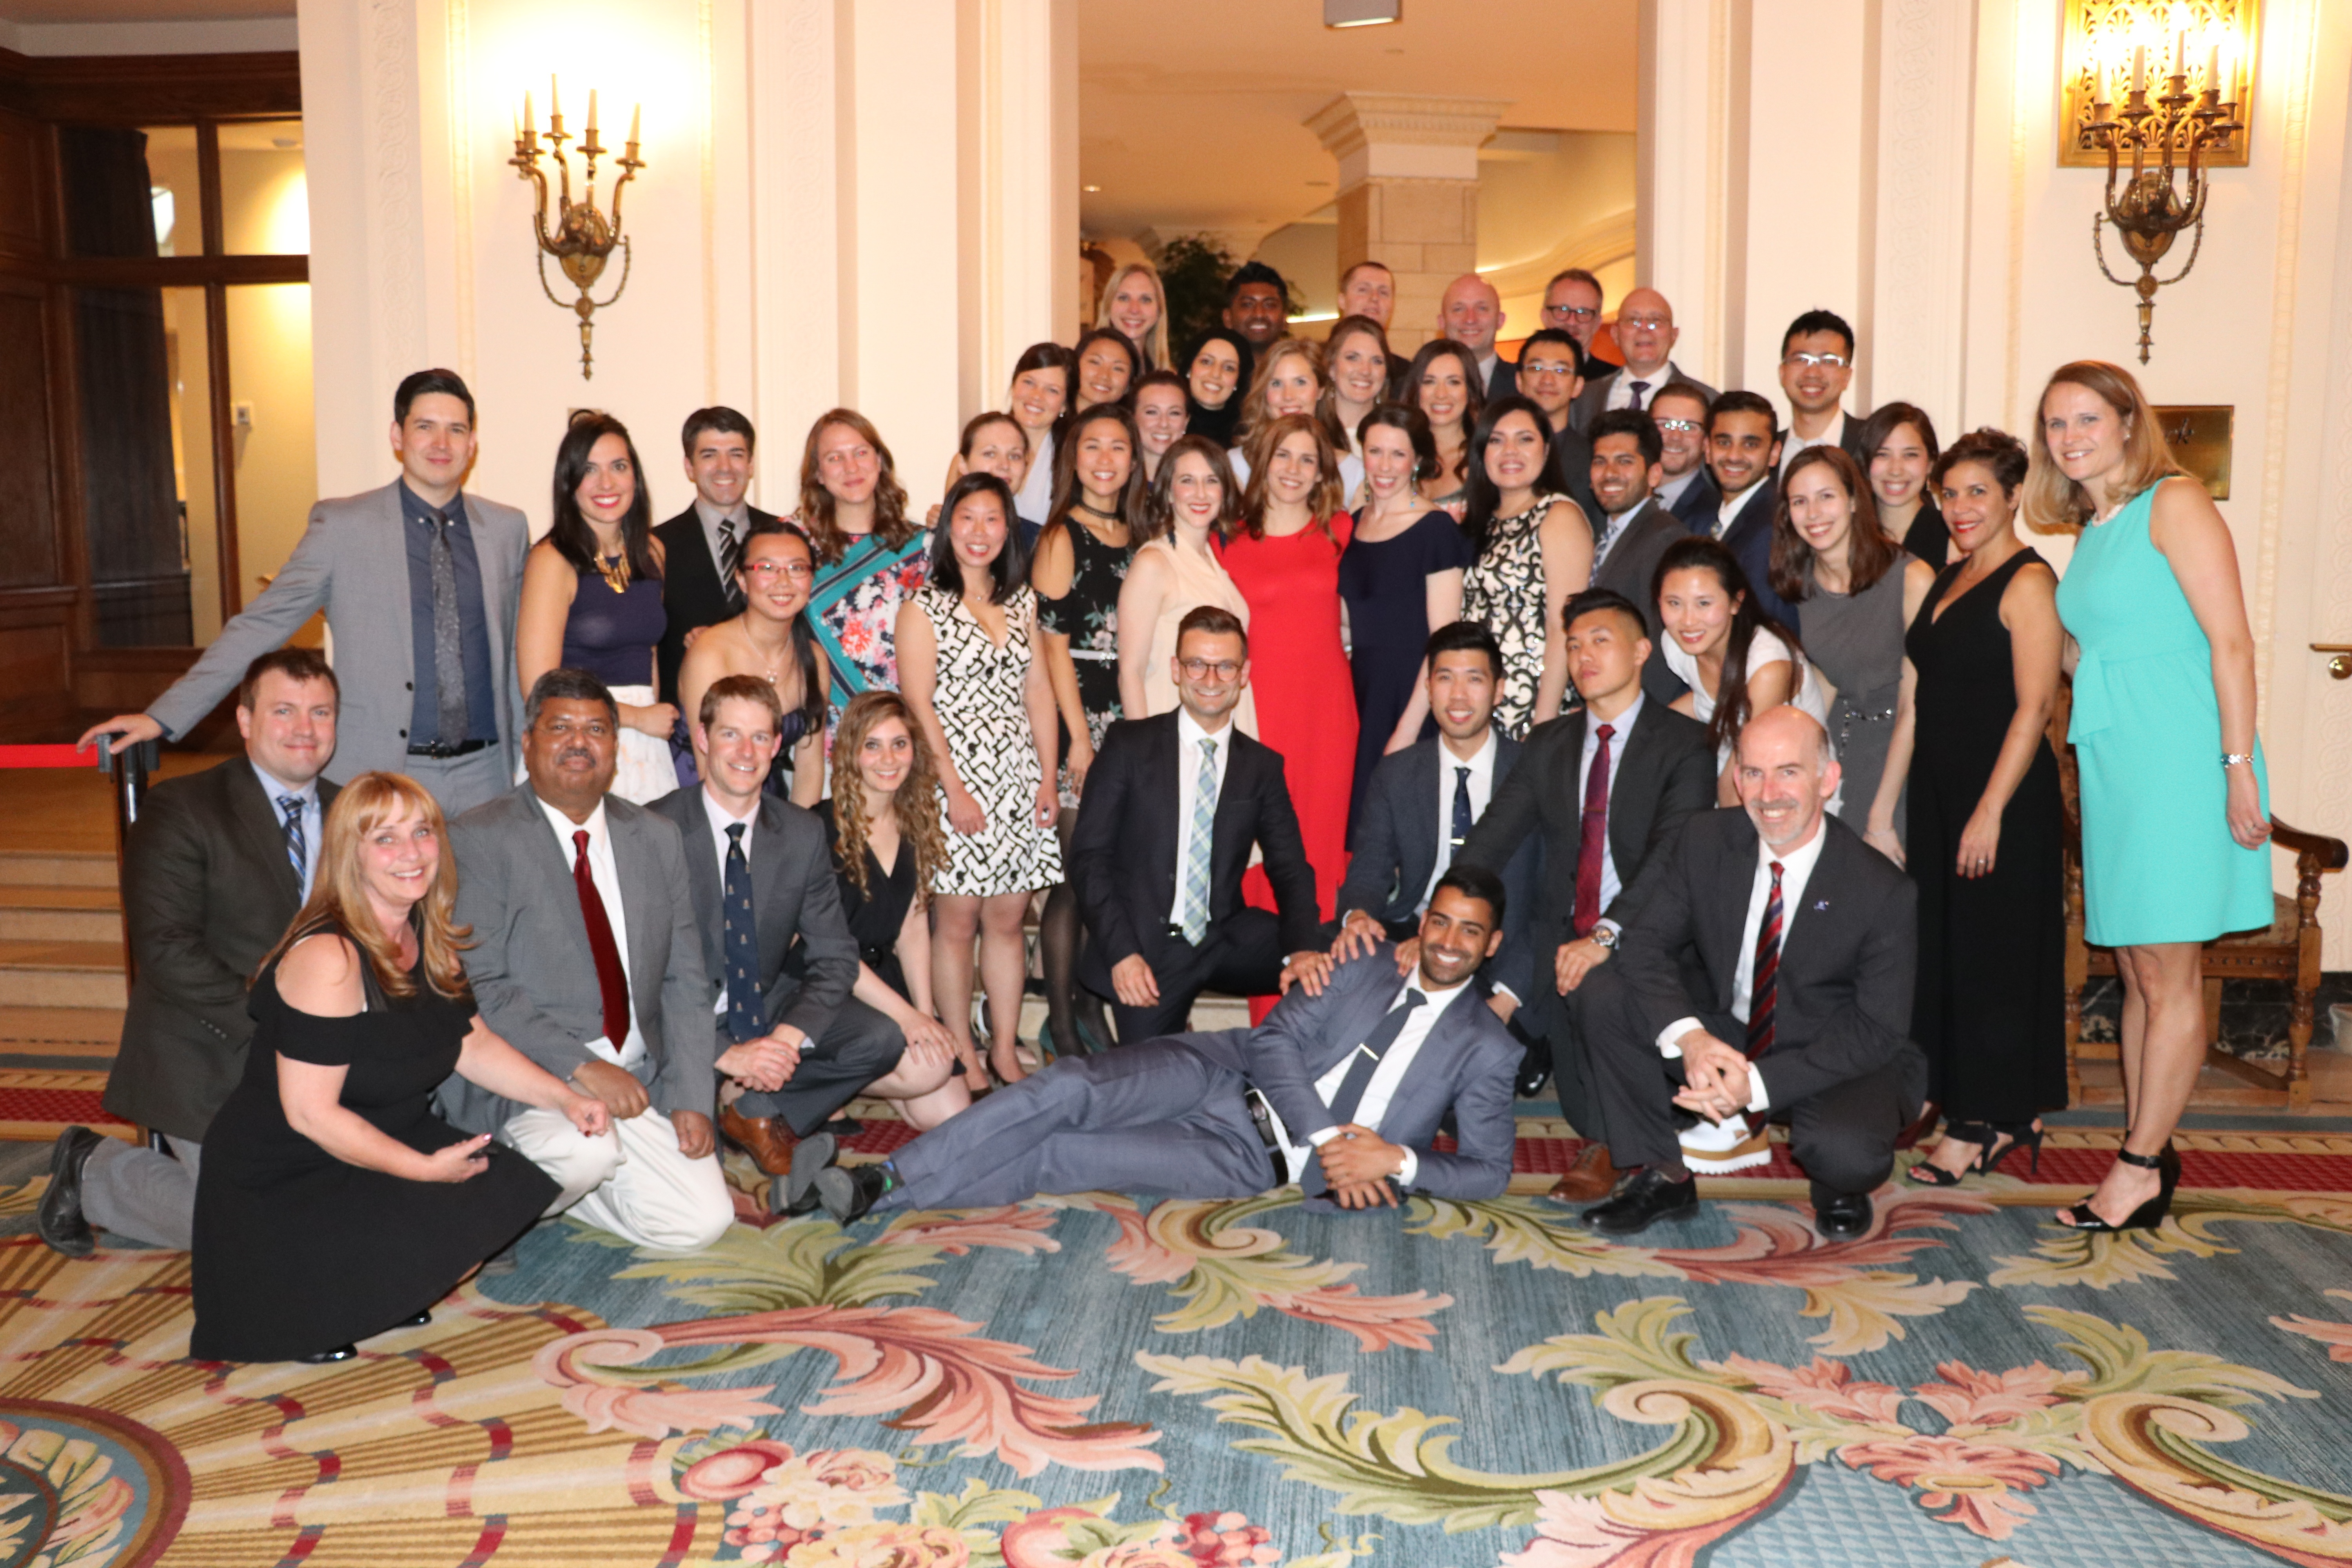 Department of Anesthesiology Residency Program staff and residents